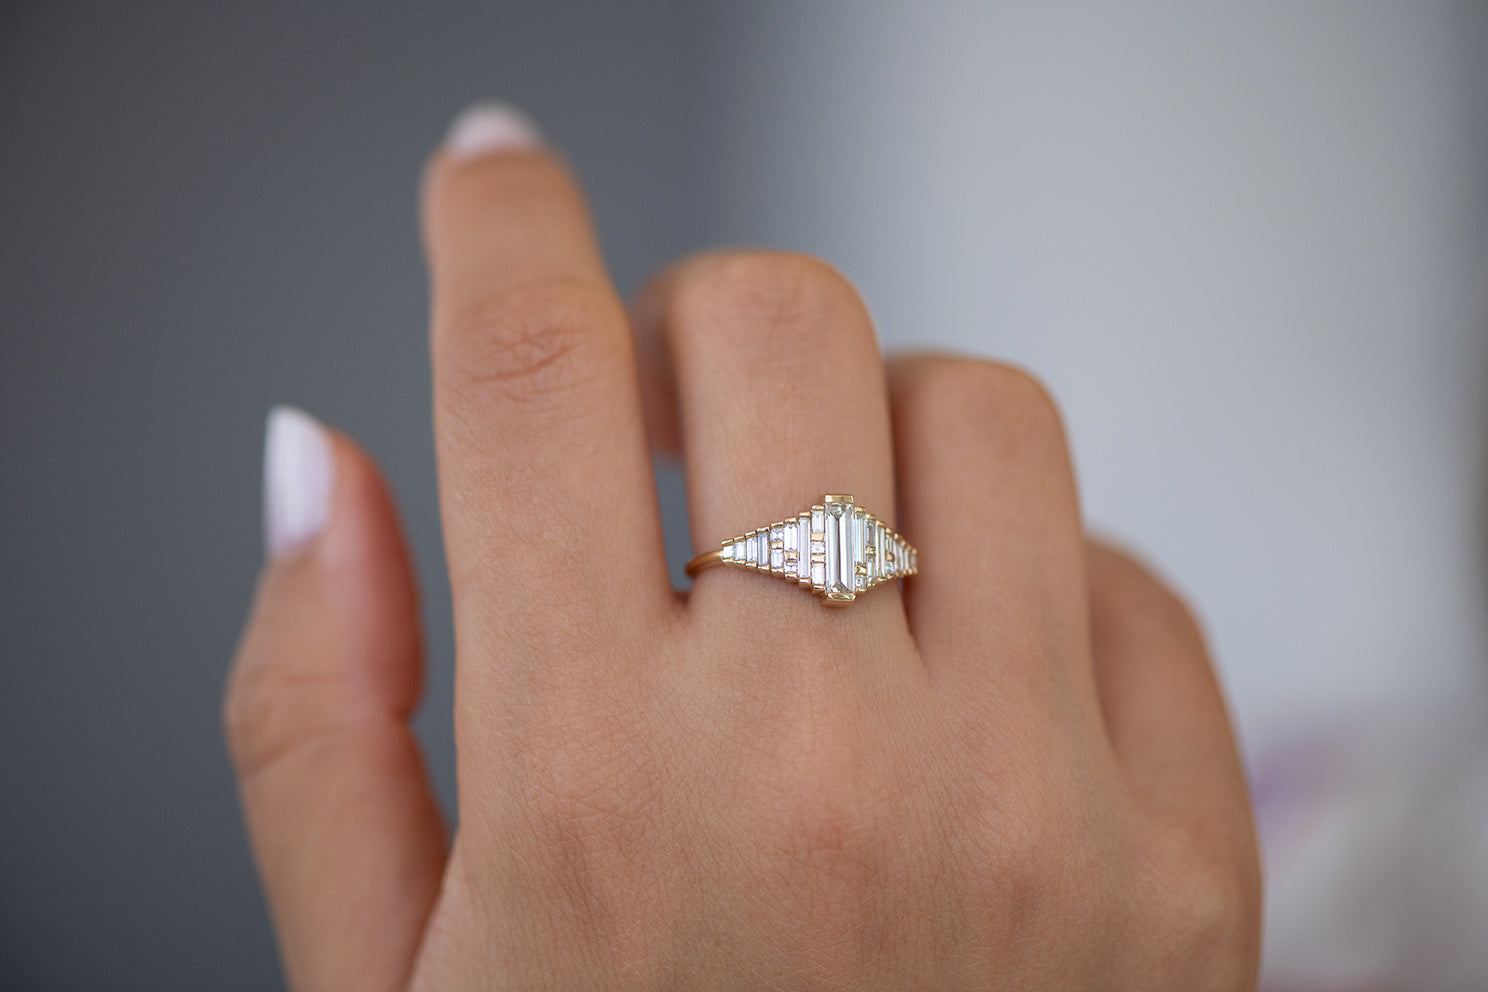 Baguette Diamond Ring with Gradient Diamonds and Gold Details on Hand other angle